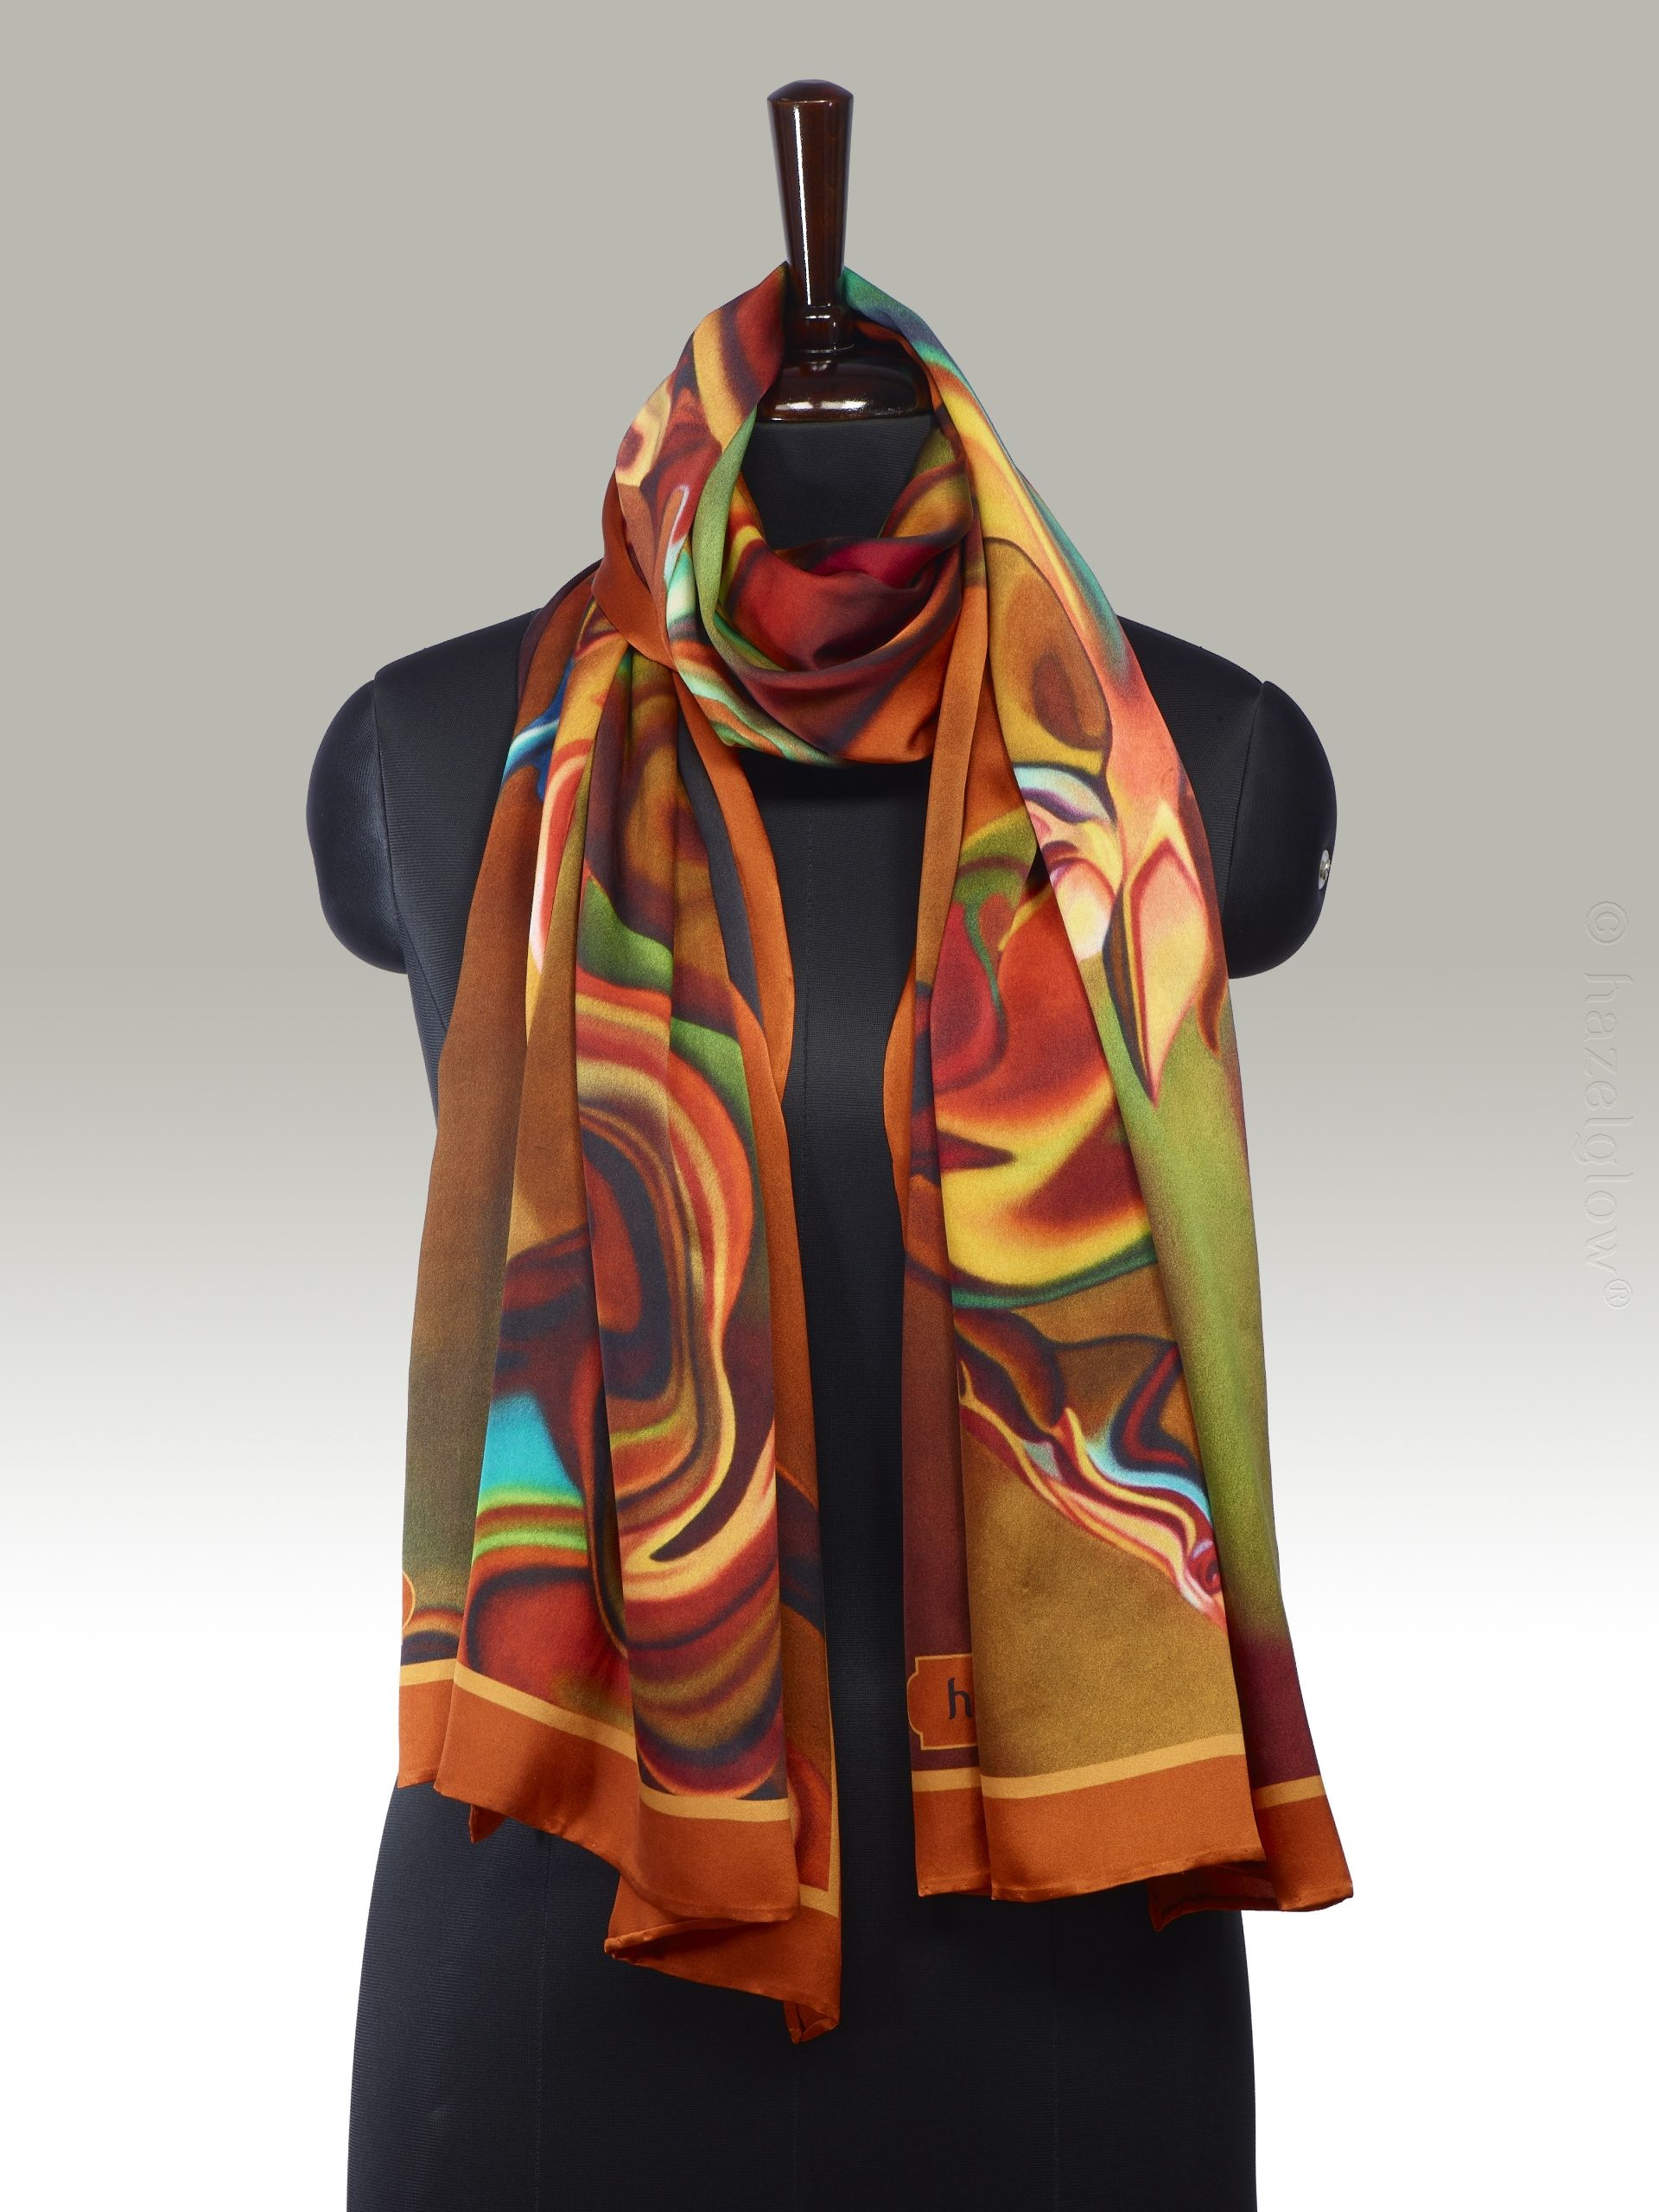 Fashion Silk Scarf 1, Fashion Scarf, Fashion, Scarf, Silk Scarf, Silk Scarves